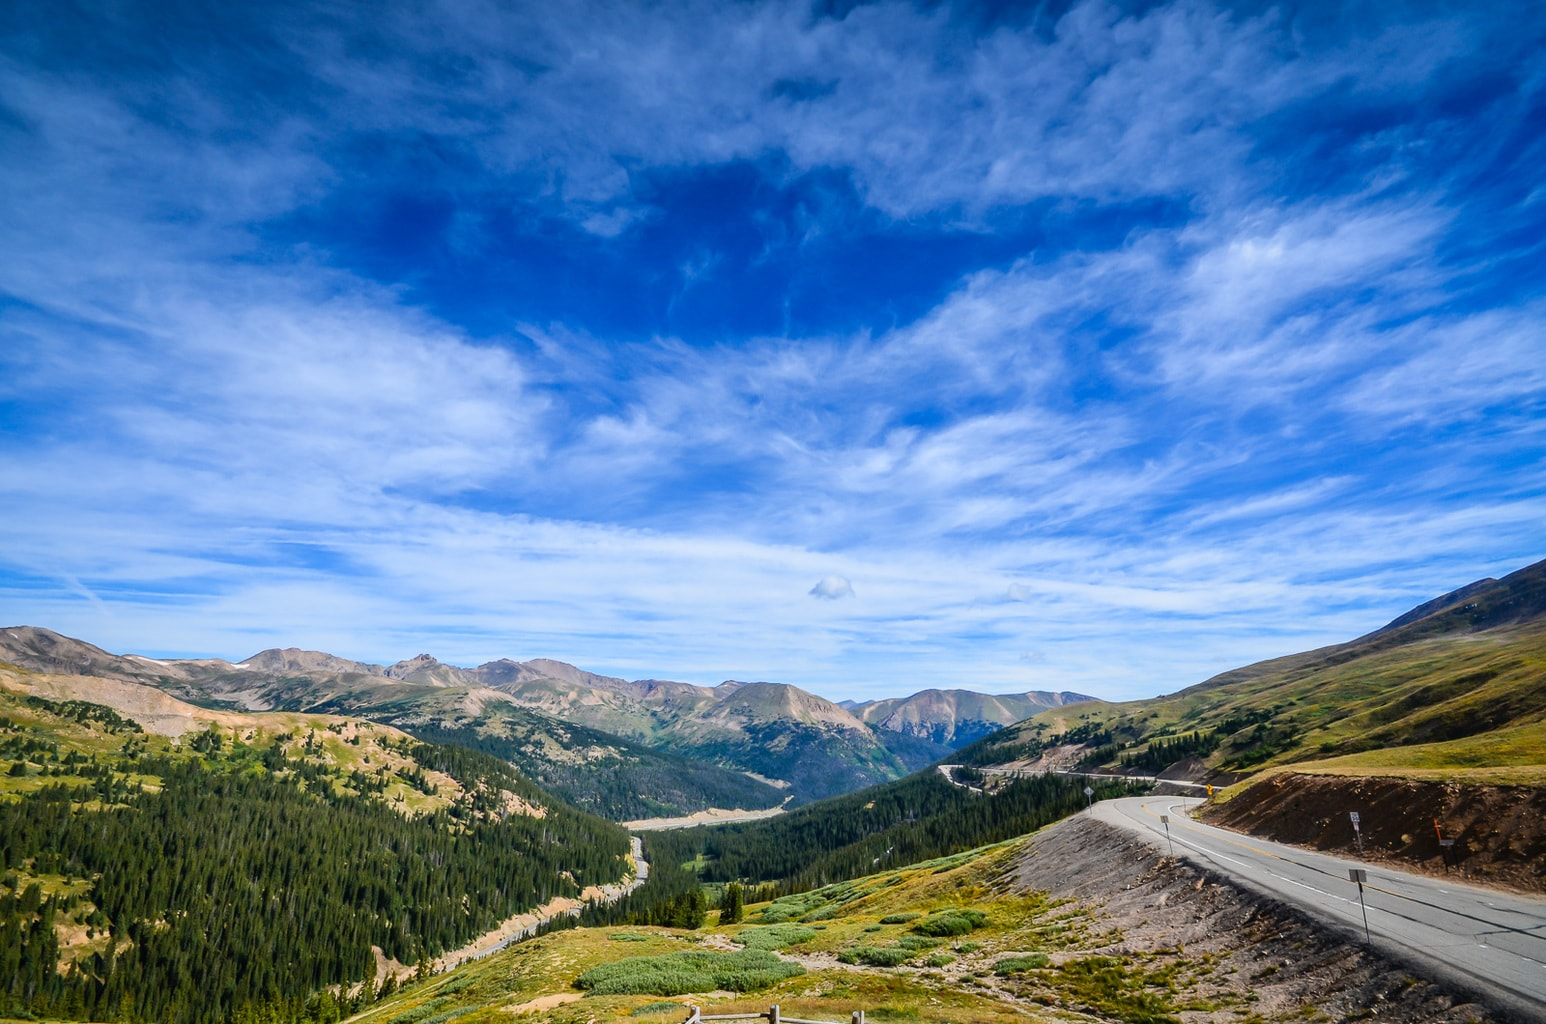 Loveland Pass on Route 6